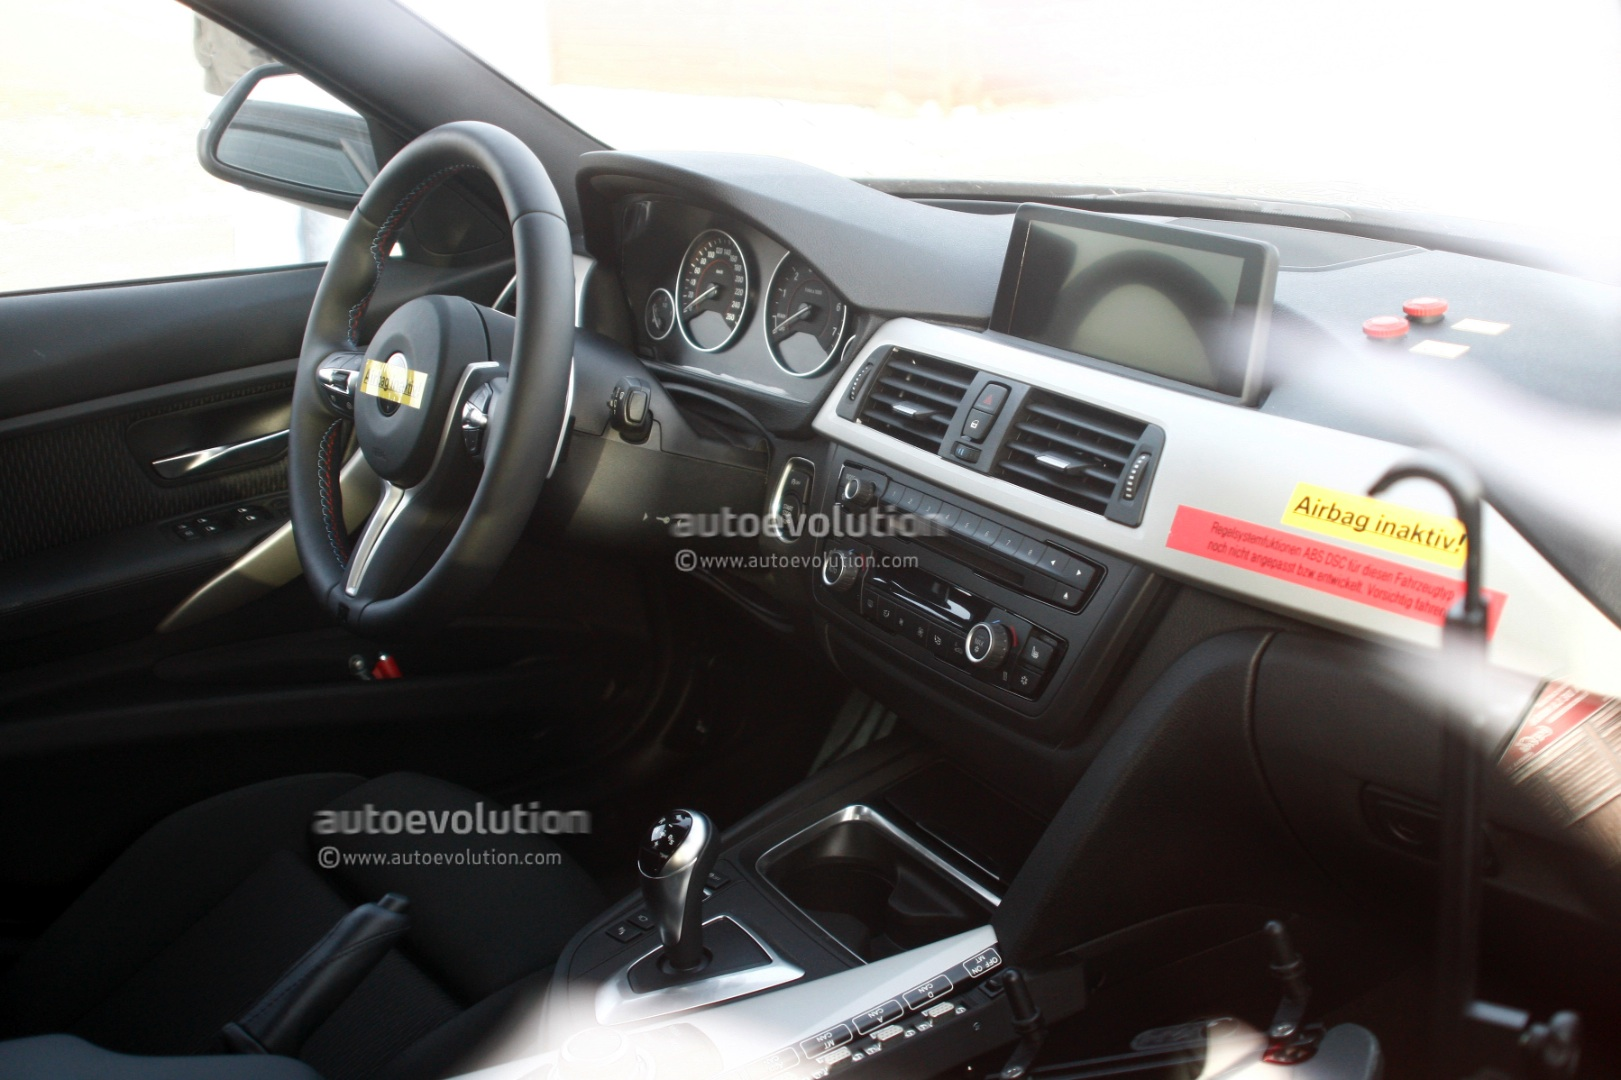 spyshots 2014 bmw m3 interior revealed autoevolution. Black Bedroom Furniture Sets. Home Design Ideas